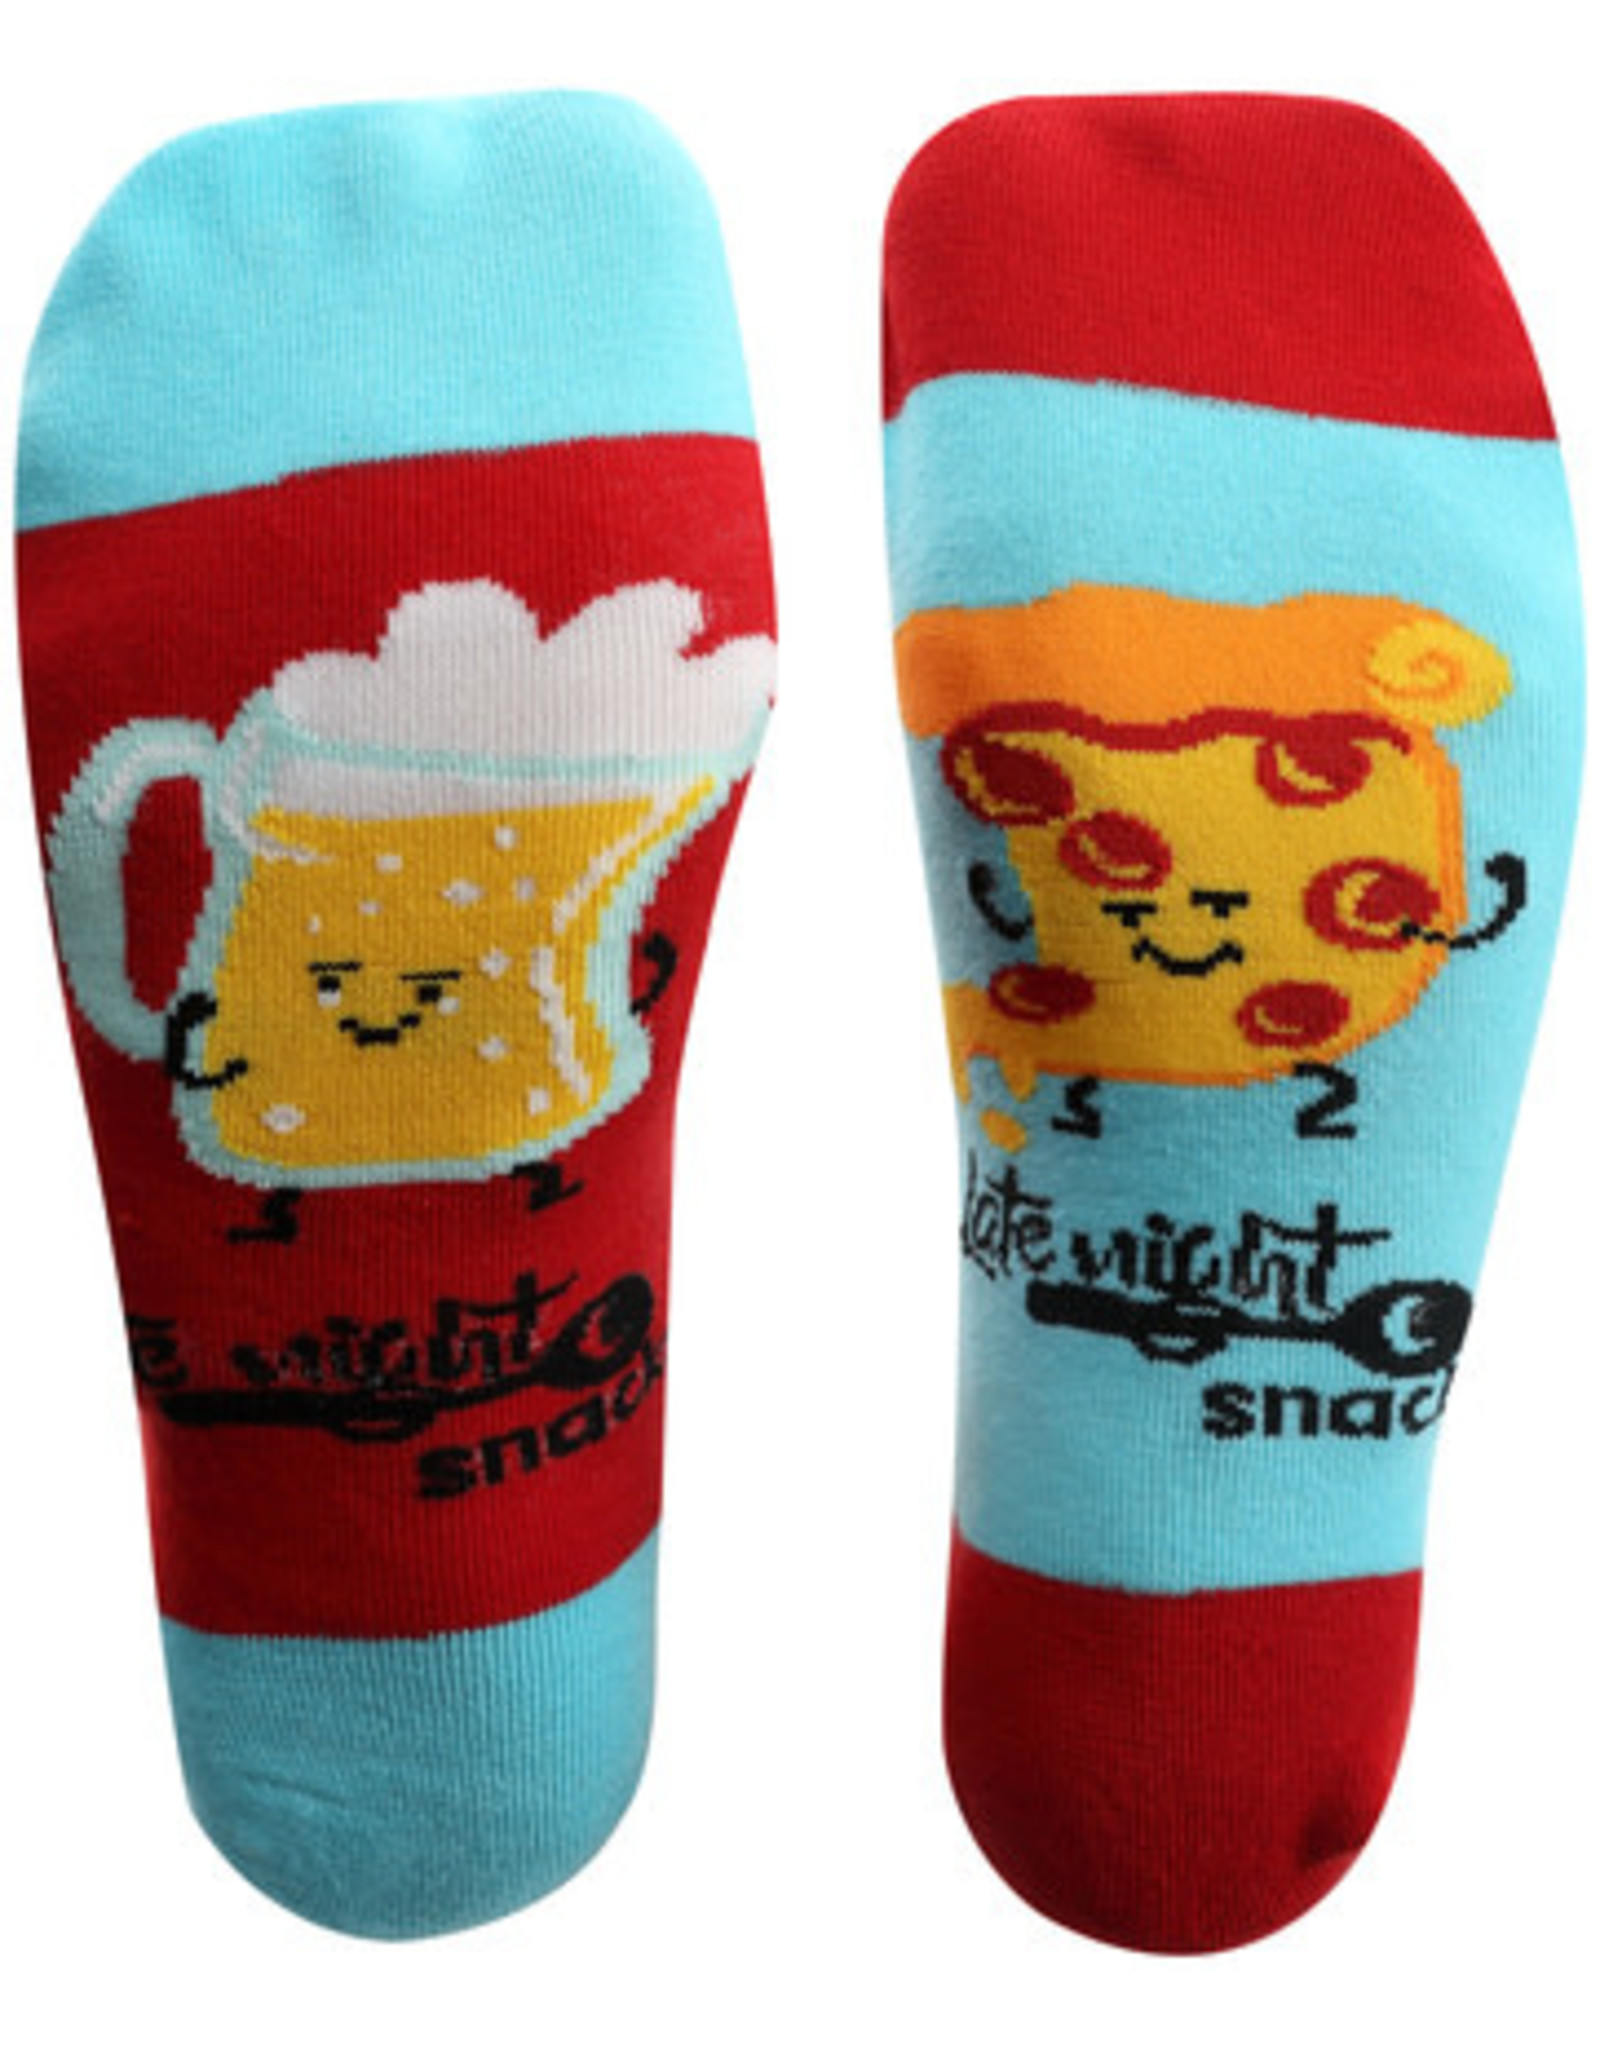 Pavilion Beer and Pizza Socks